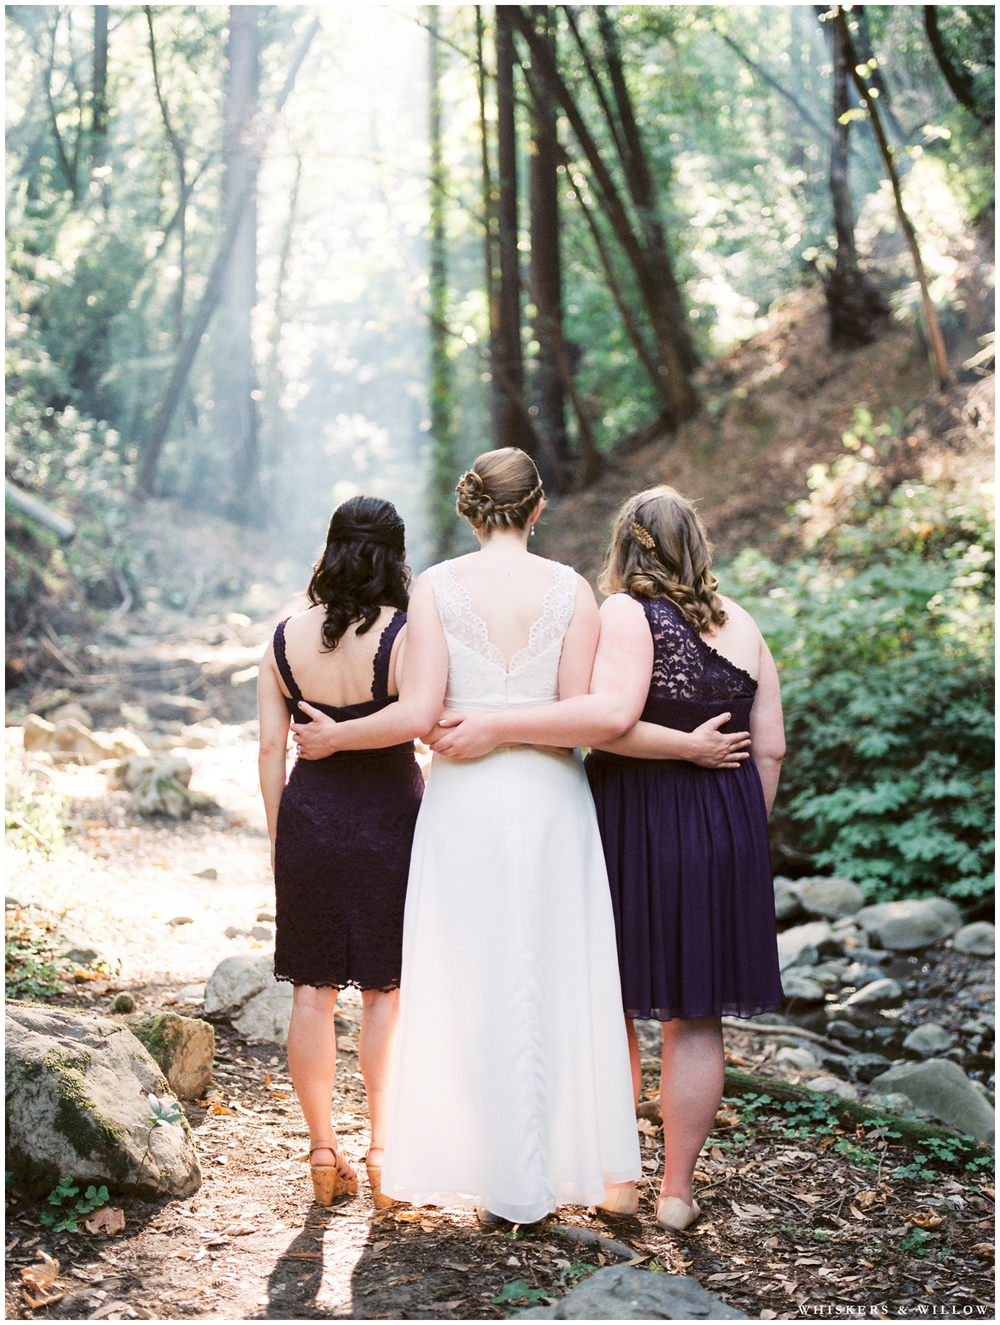 Saratoga Springs Wedding - Forest woodland wedding - classic bride - purple lace bridesmaids dress - Whiskers and Willow Photography